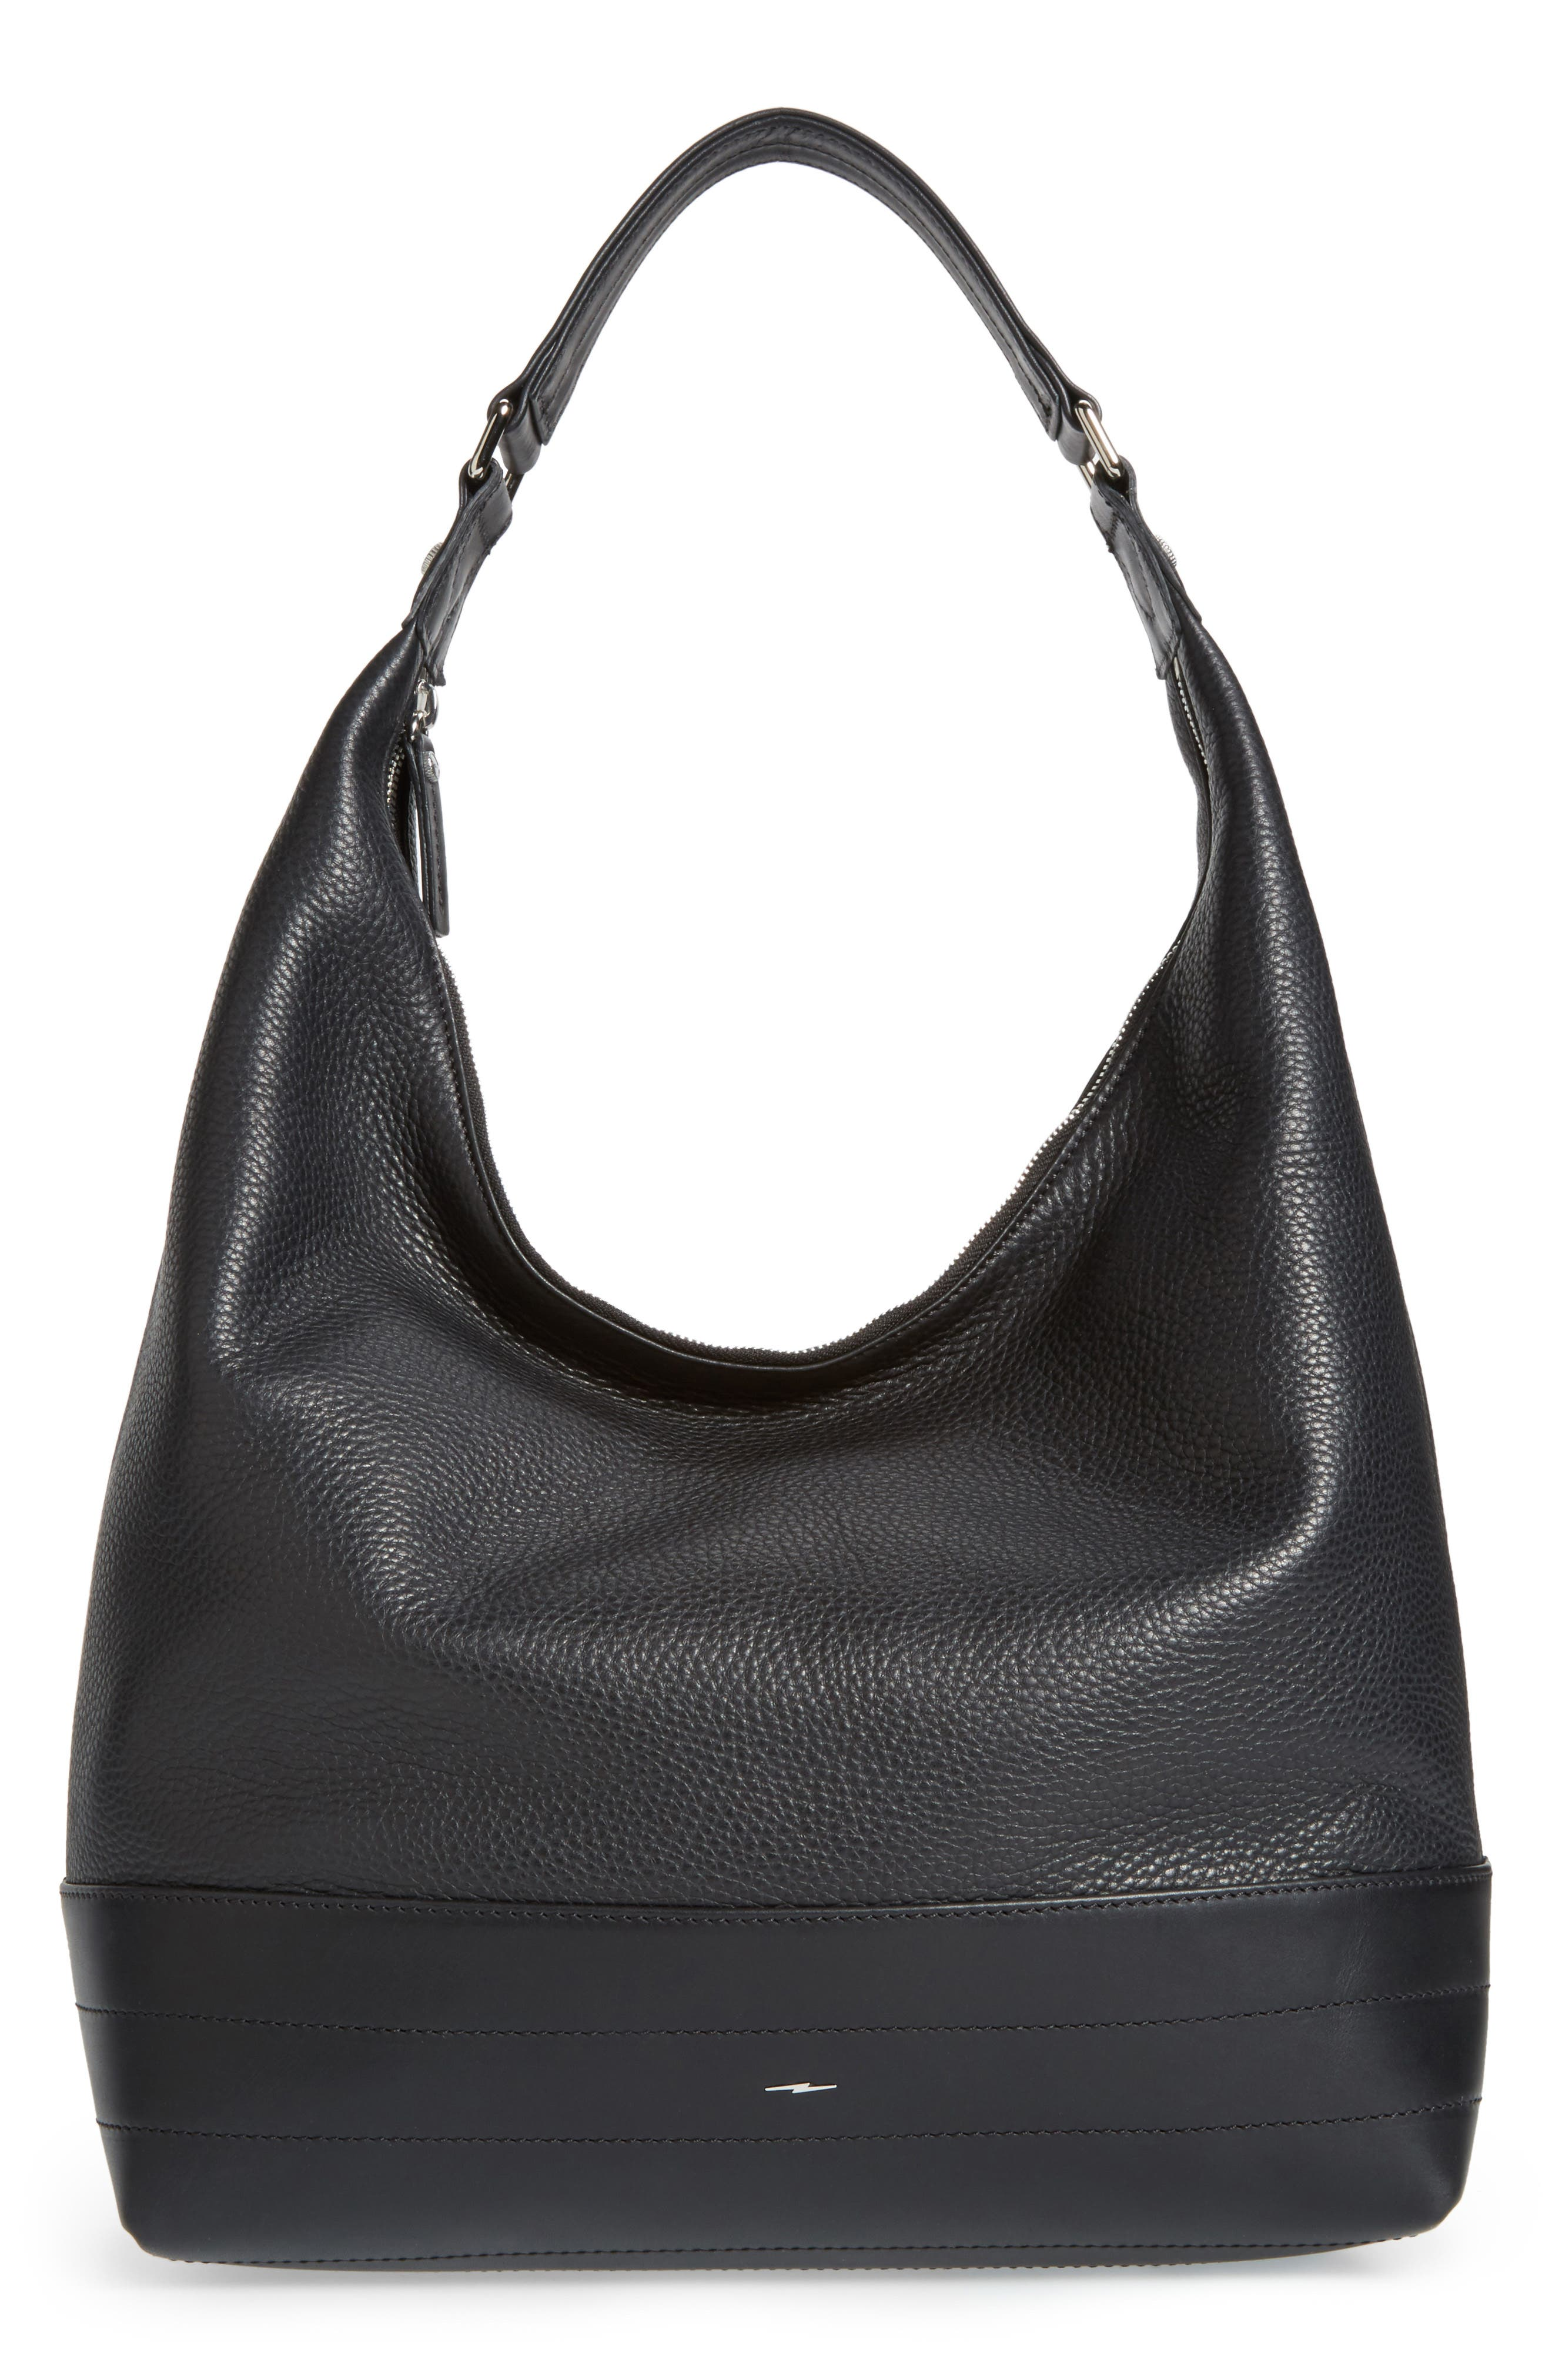 Shinola Leather Hobo